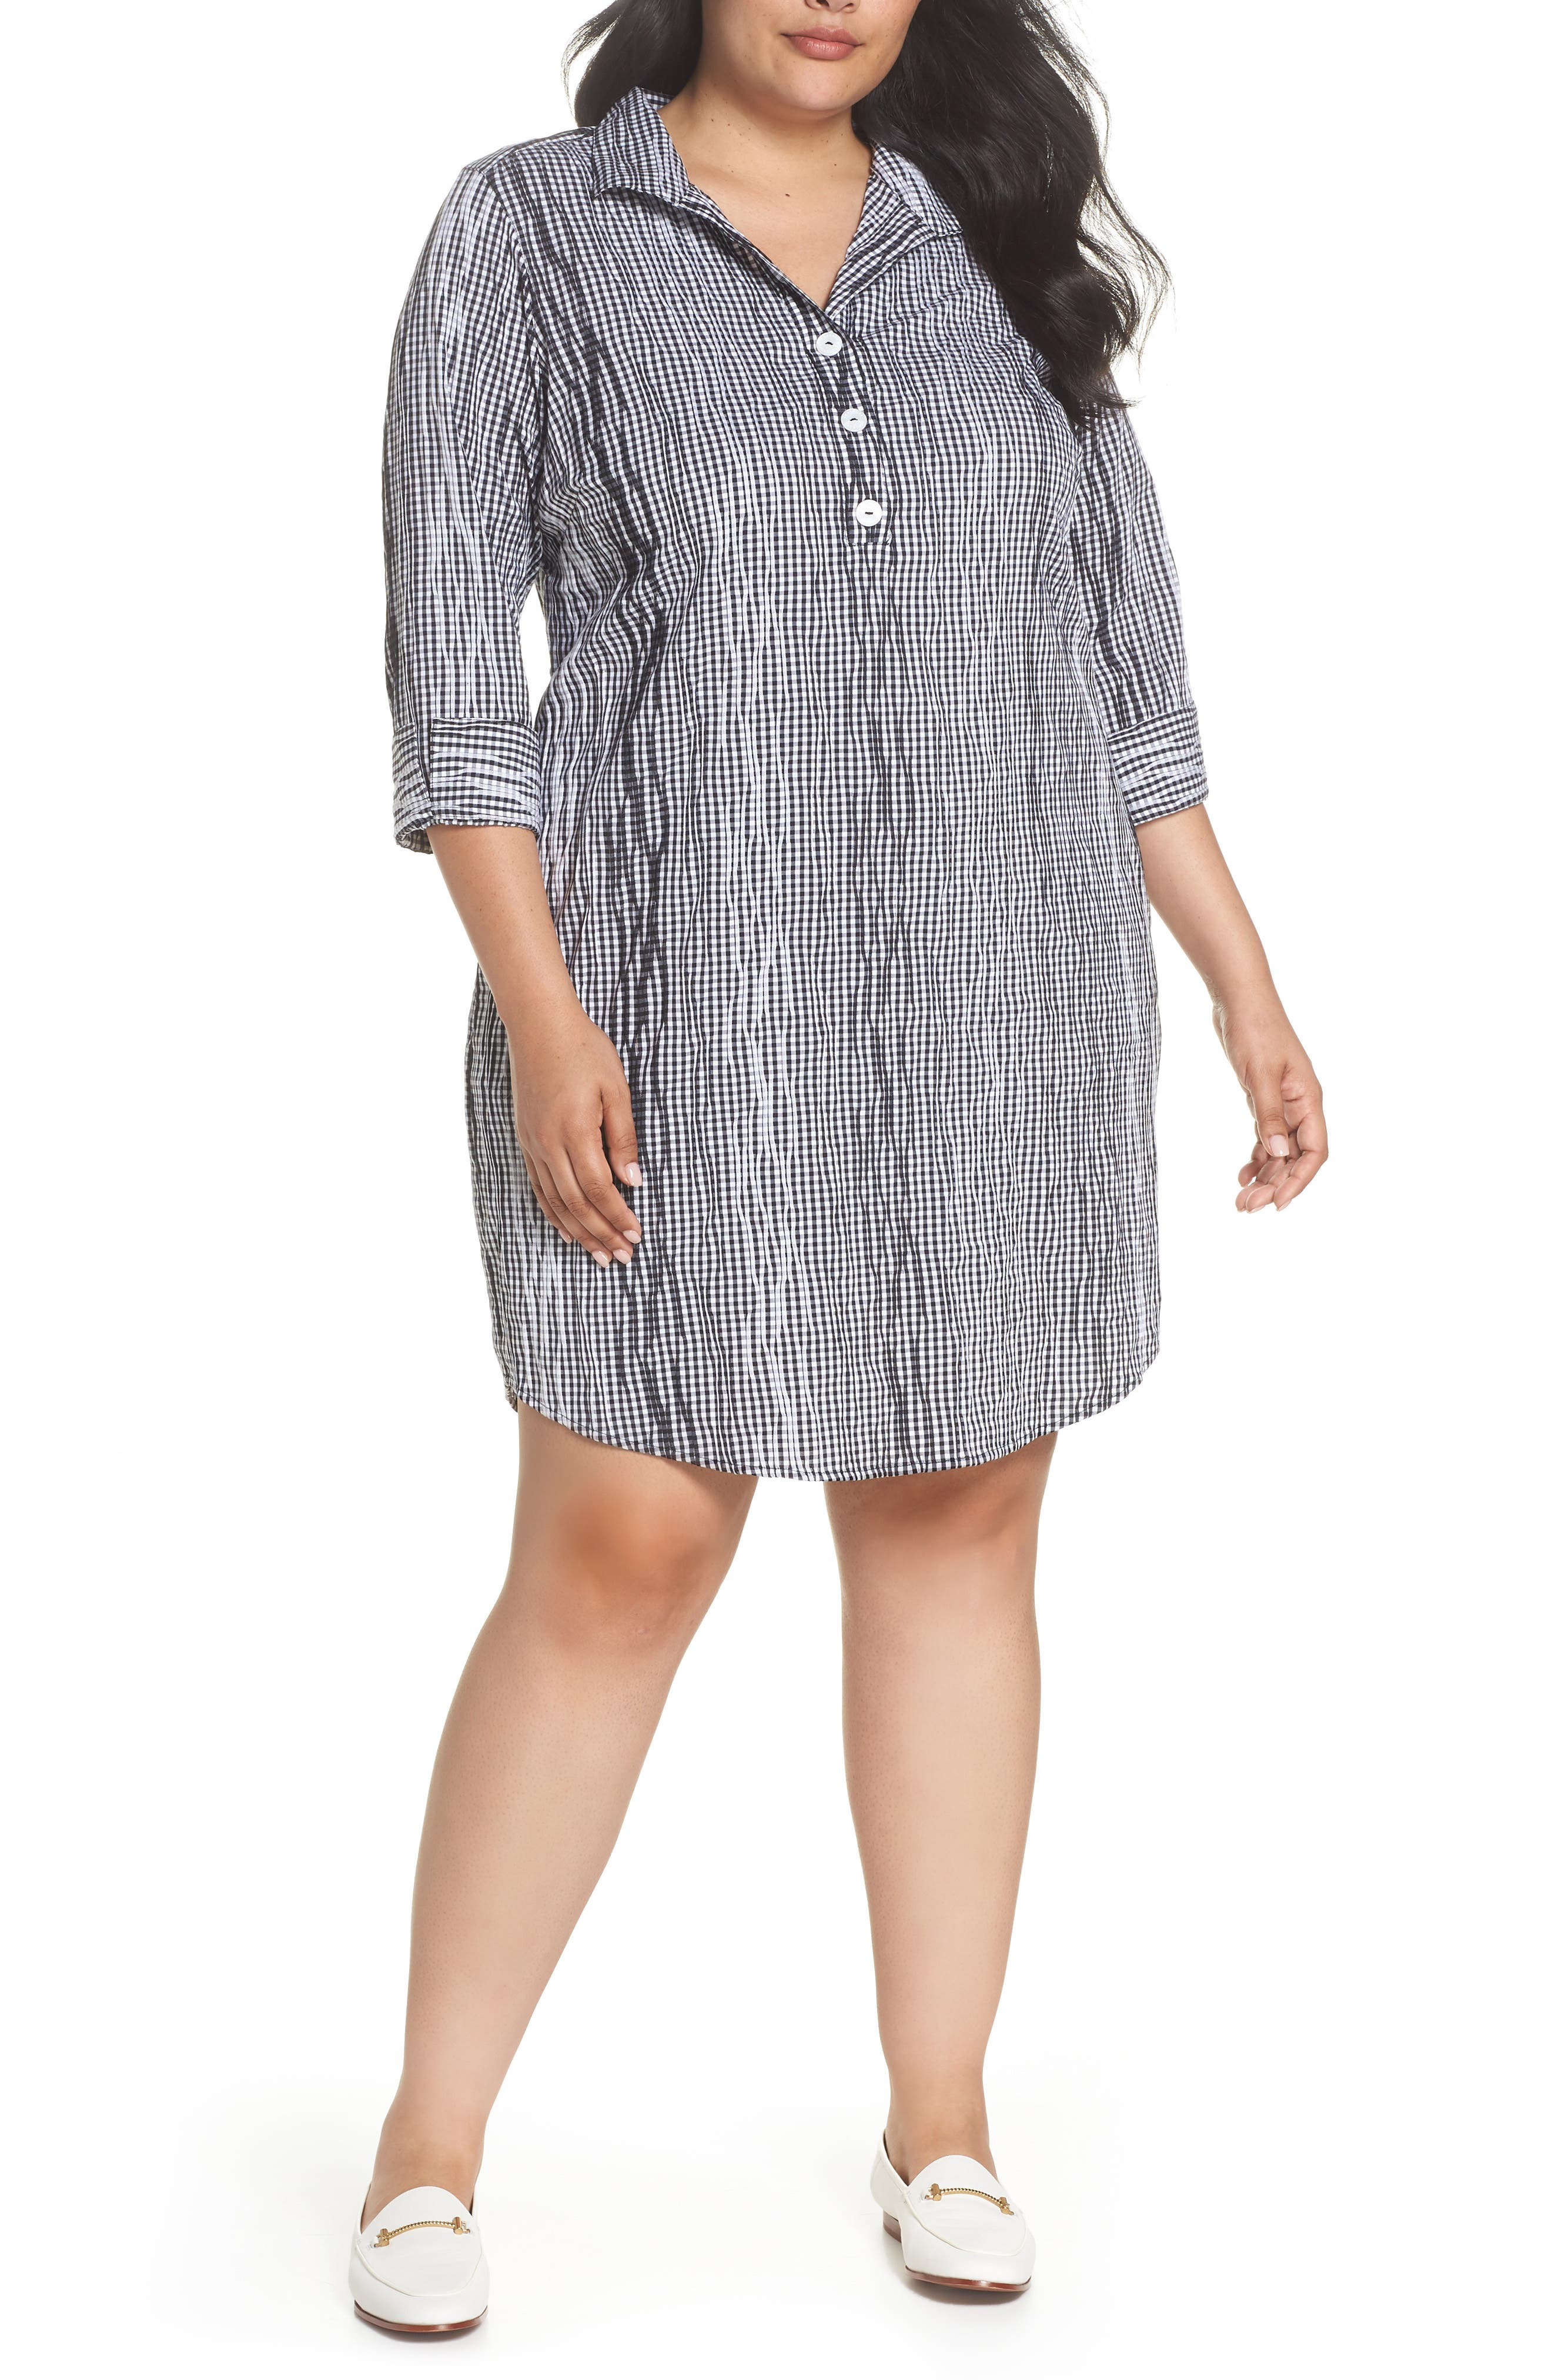 Foxcroft Miri Crinkle Gingham Shirtdress (Plus Size)